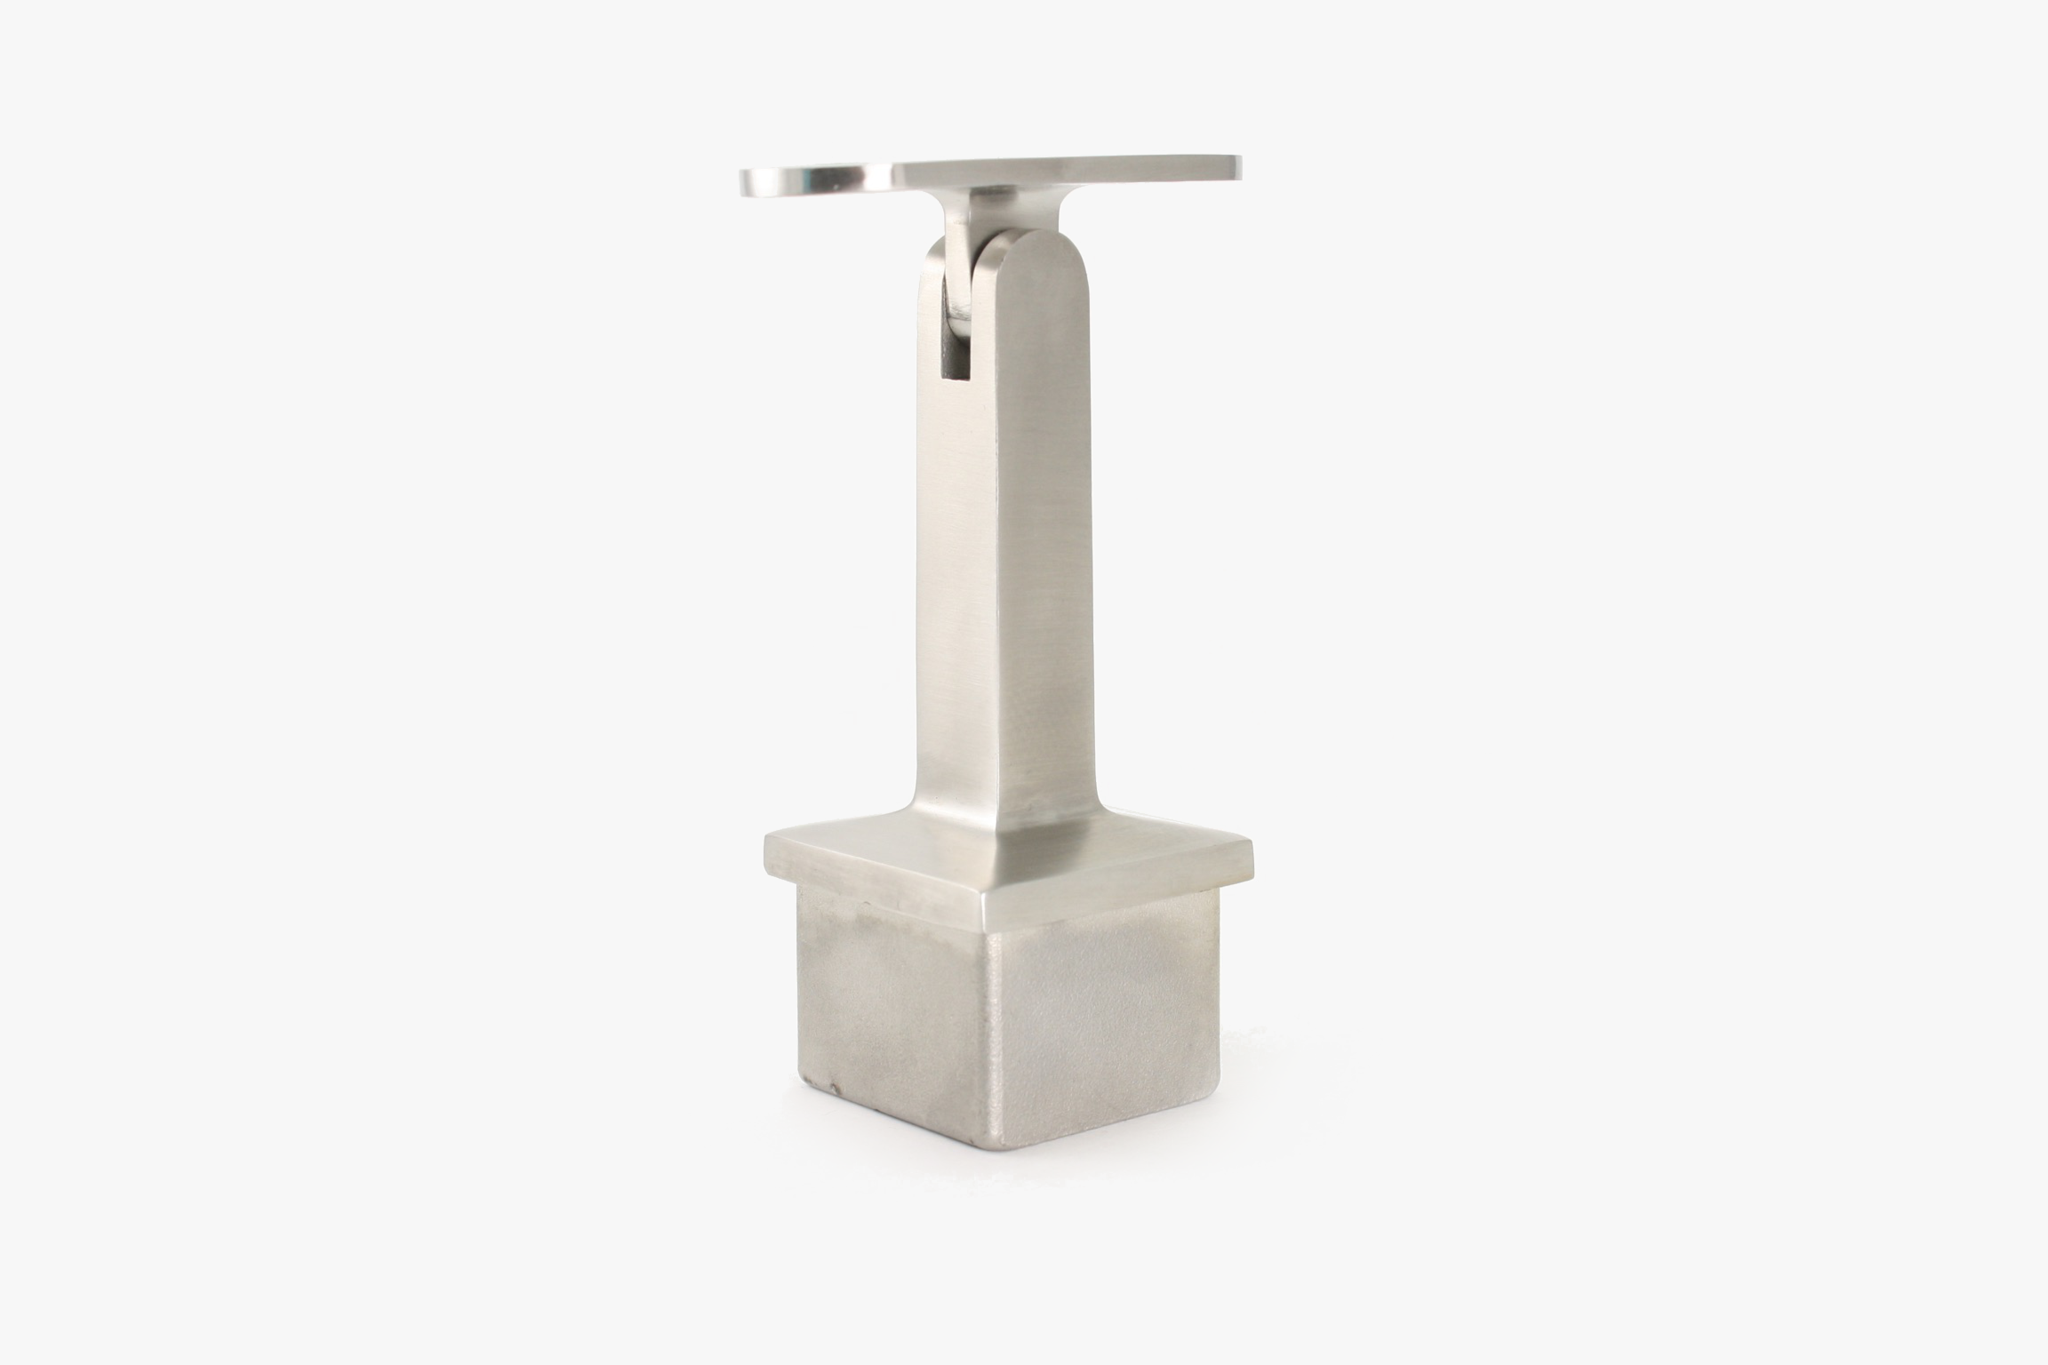 Tube mounted bracket for square tube - Brushed stainless steel